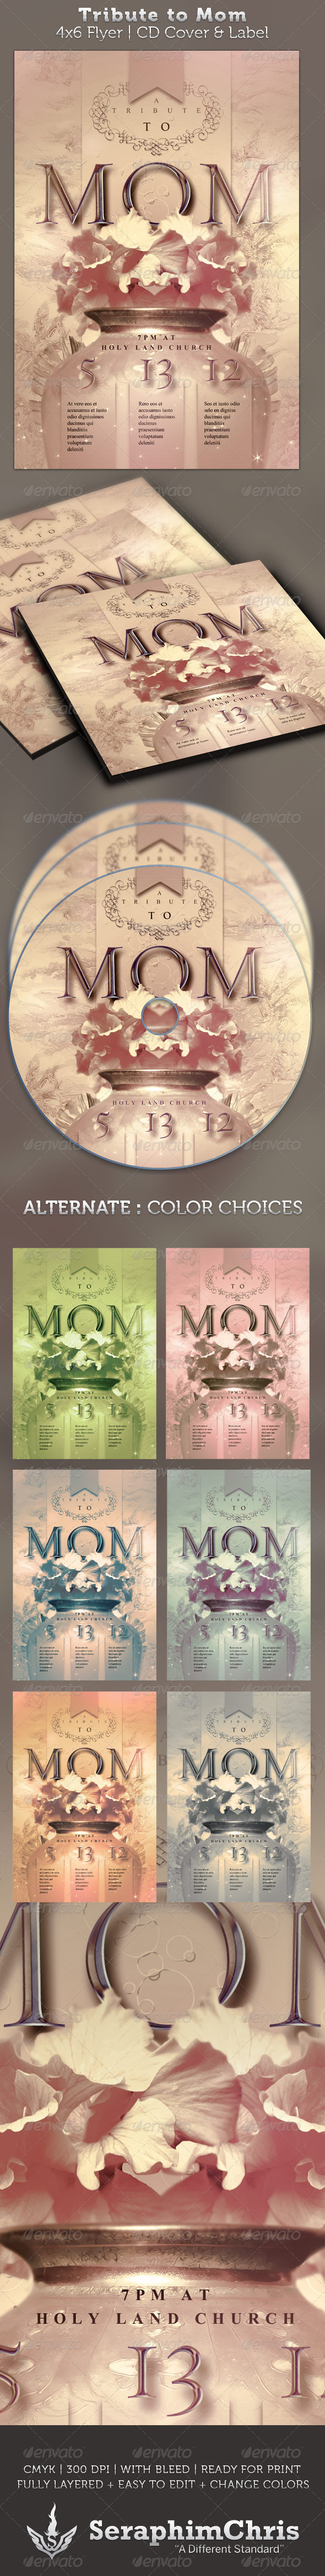 GraphicRiver Tribute to Mom 4x6 Flyer and CD Cover 2228400